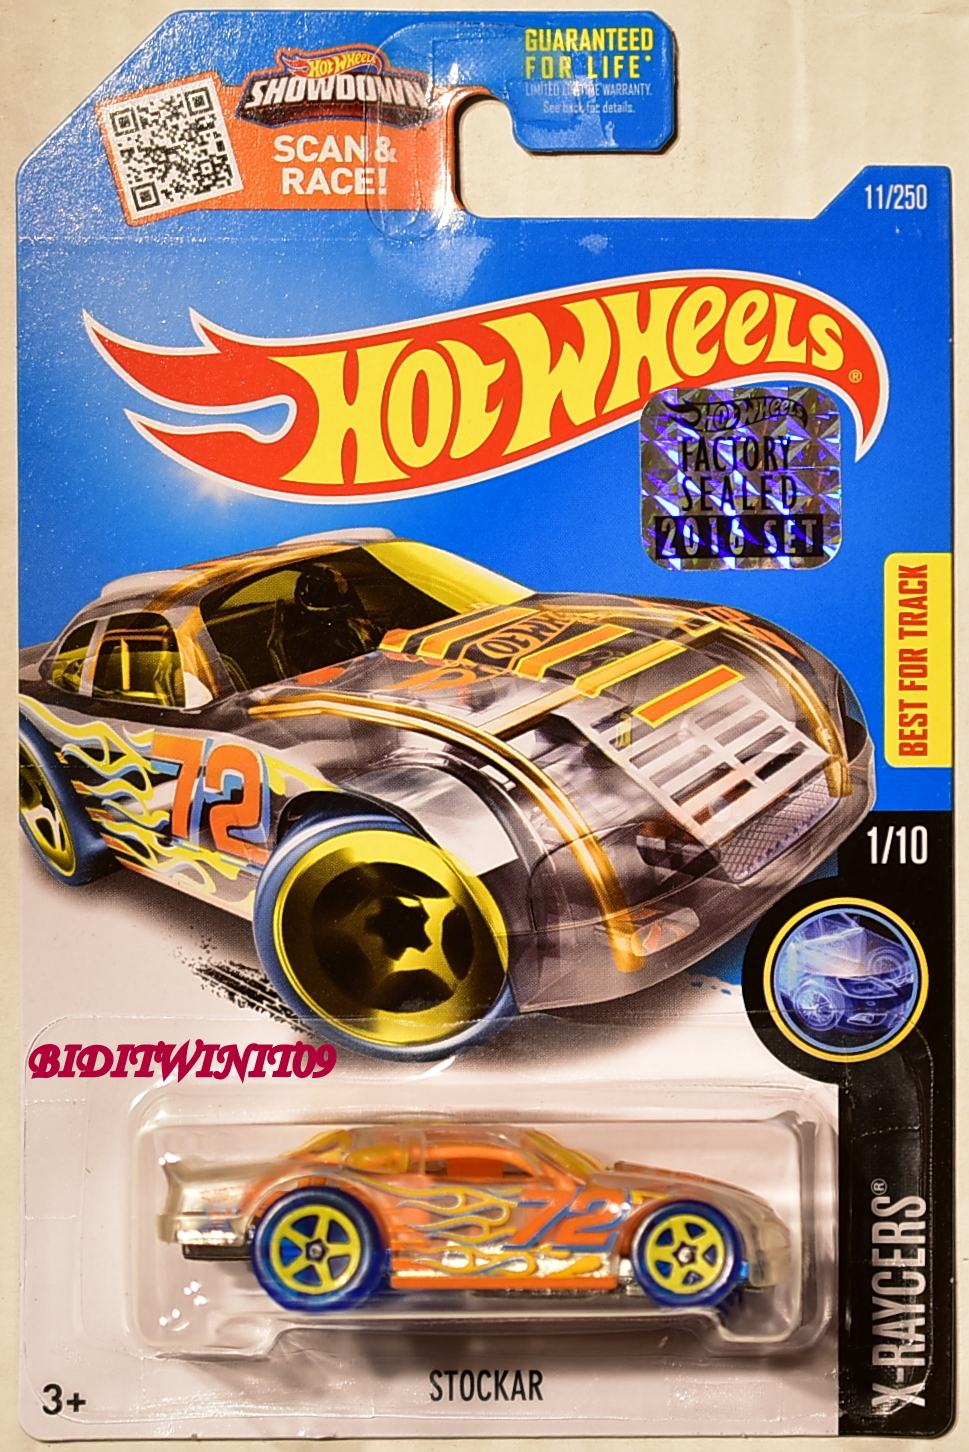 HOT WHEELS 2016 X-RAYCERS STOCKAR #1/10 FACTORY SEALED